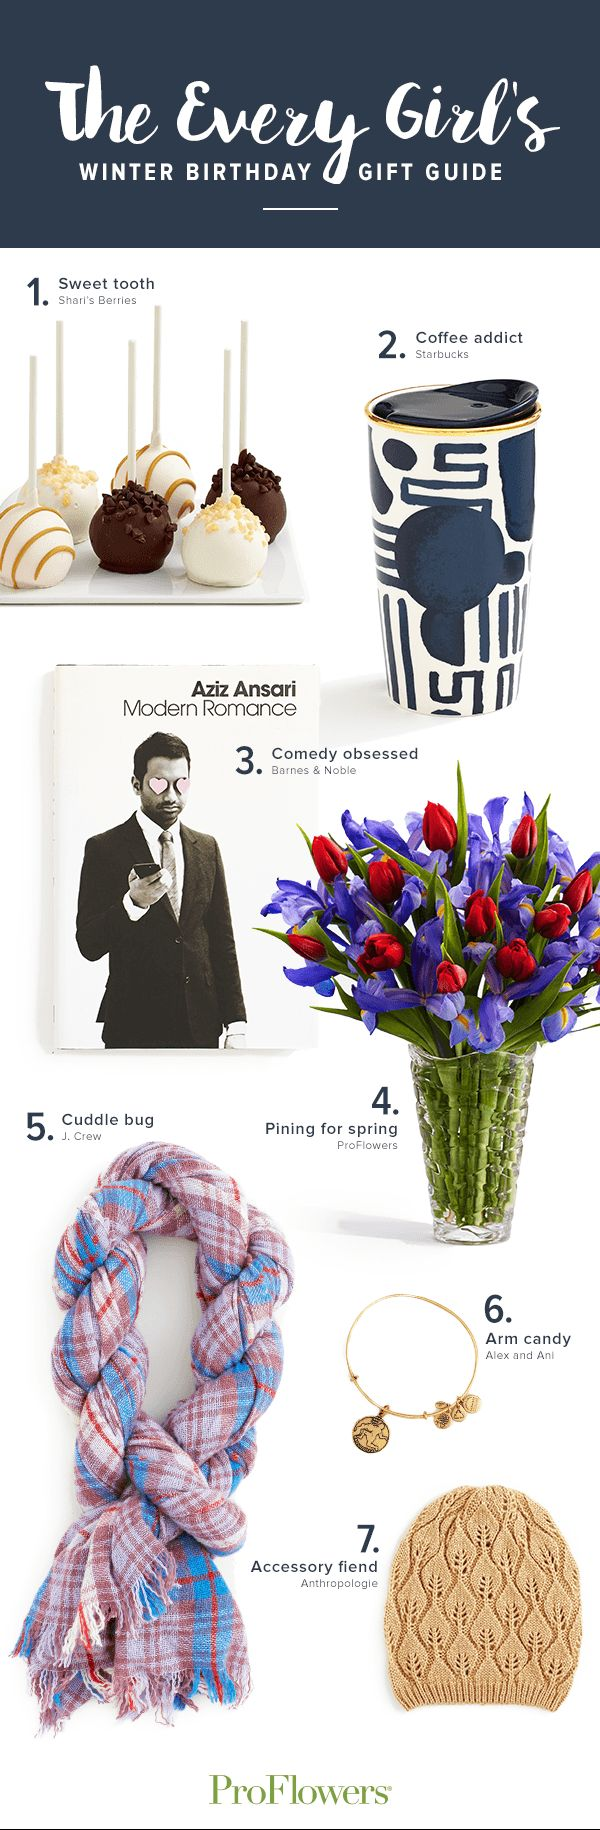 If your girlfriend's, best friend's, or Mom's birthday is coming up this winter and you're stumped for gift ideas, get her something that will keep her inspired! Here are 7 gift ideas for her on her birthday, organized by personality.